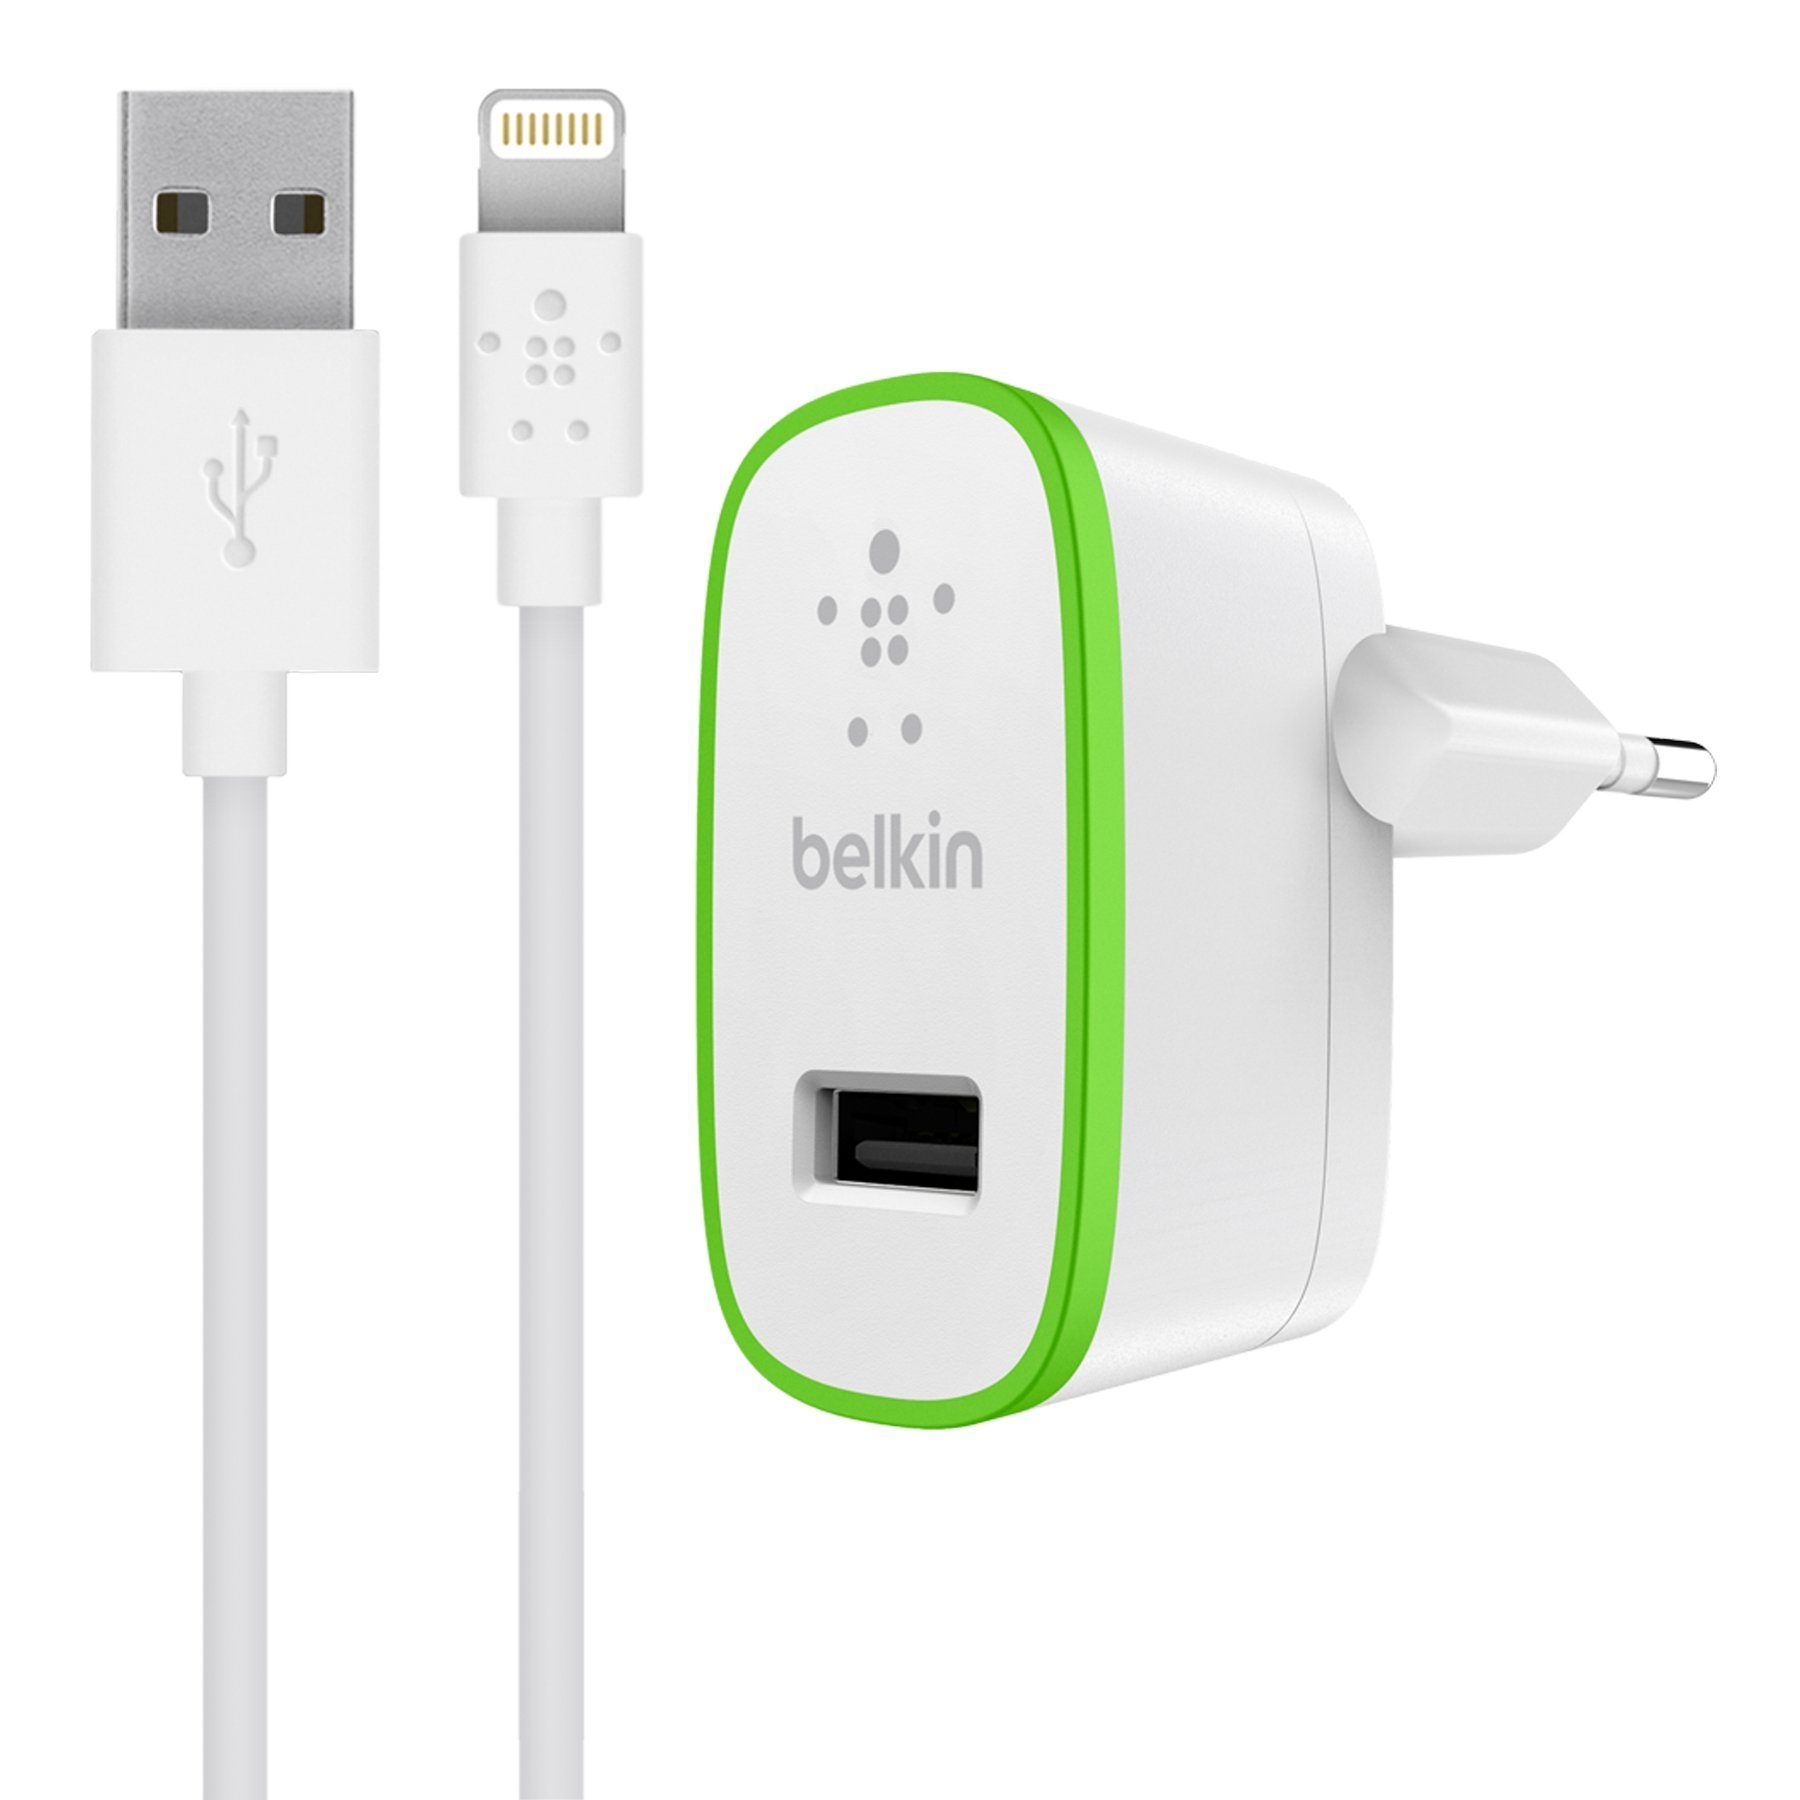 BELKIN Netzteil »CHARGER USB INCL. CABLE 1.2M«